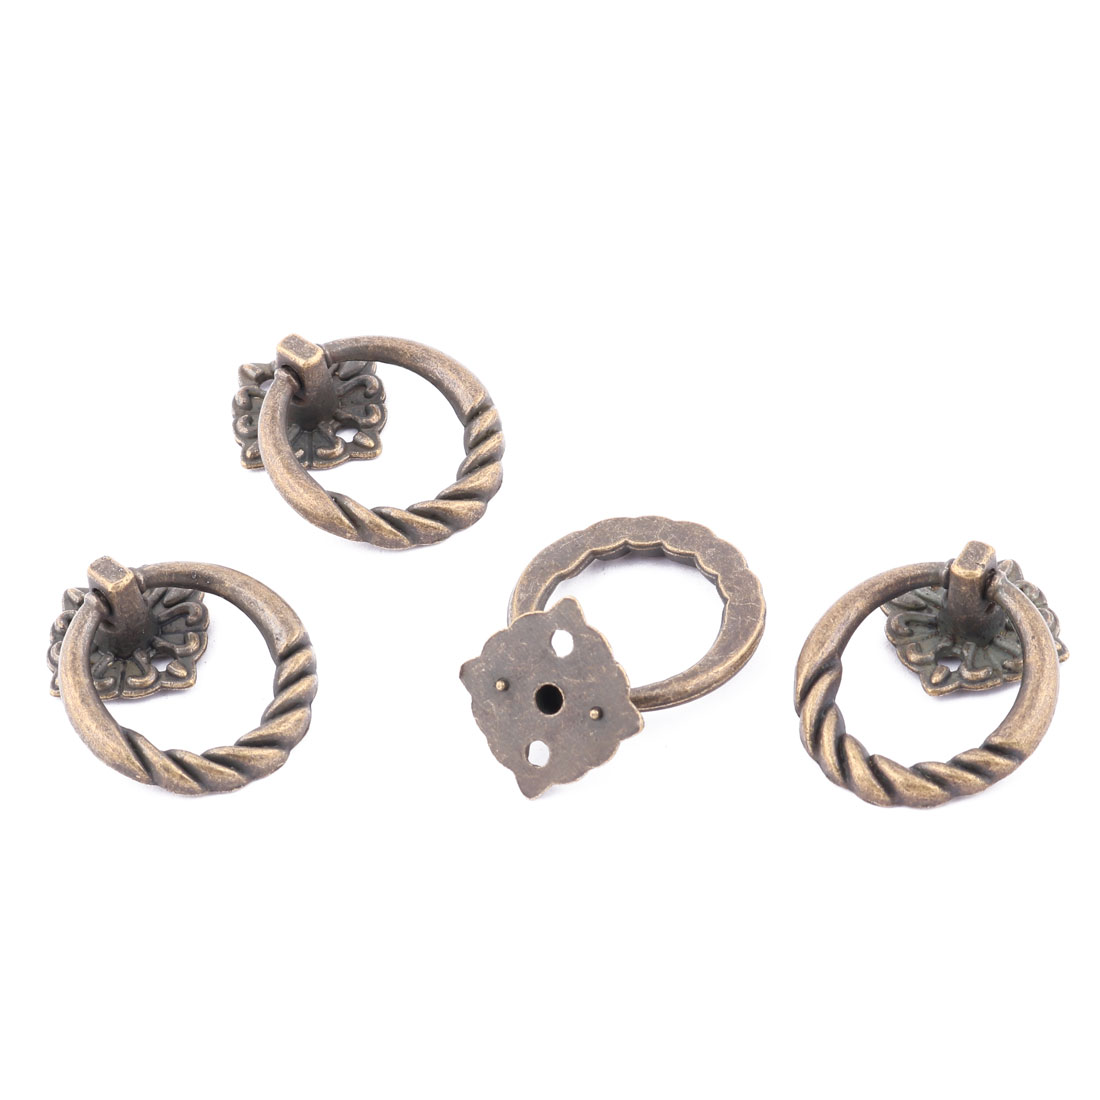 Cupboard Cabinet Drawer Dresser Metal Ring Pull Handle Knob Bronze Tone 4pcs